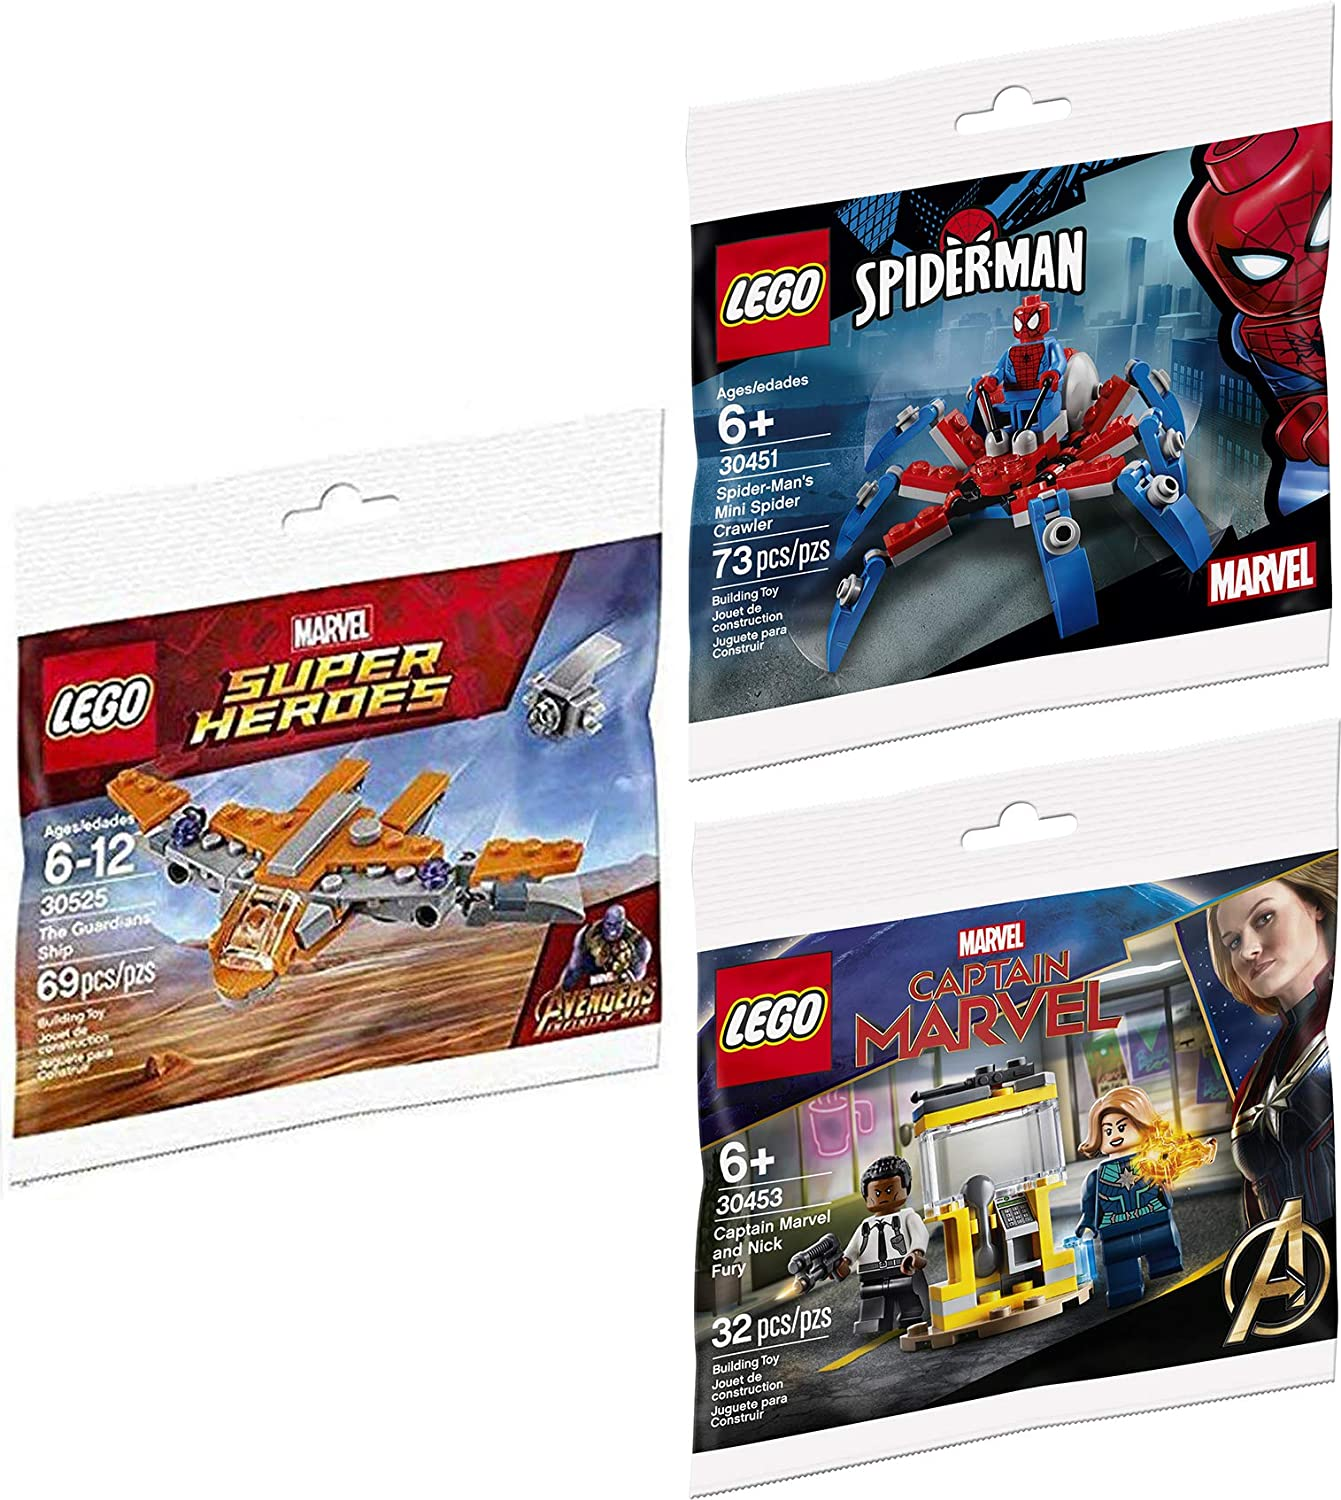 LEGO Blast Team up Hero Ship Avengers Brick Set Bundled with + Super Infinity Wars Ship Galaxy Polybag 30452: Captain Marvel & Nick Fury 30453 + Spider-Man 30451 Crawler 3 Items Mini Sets